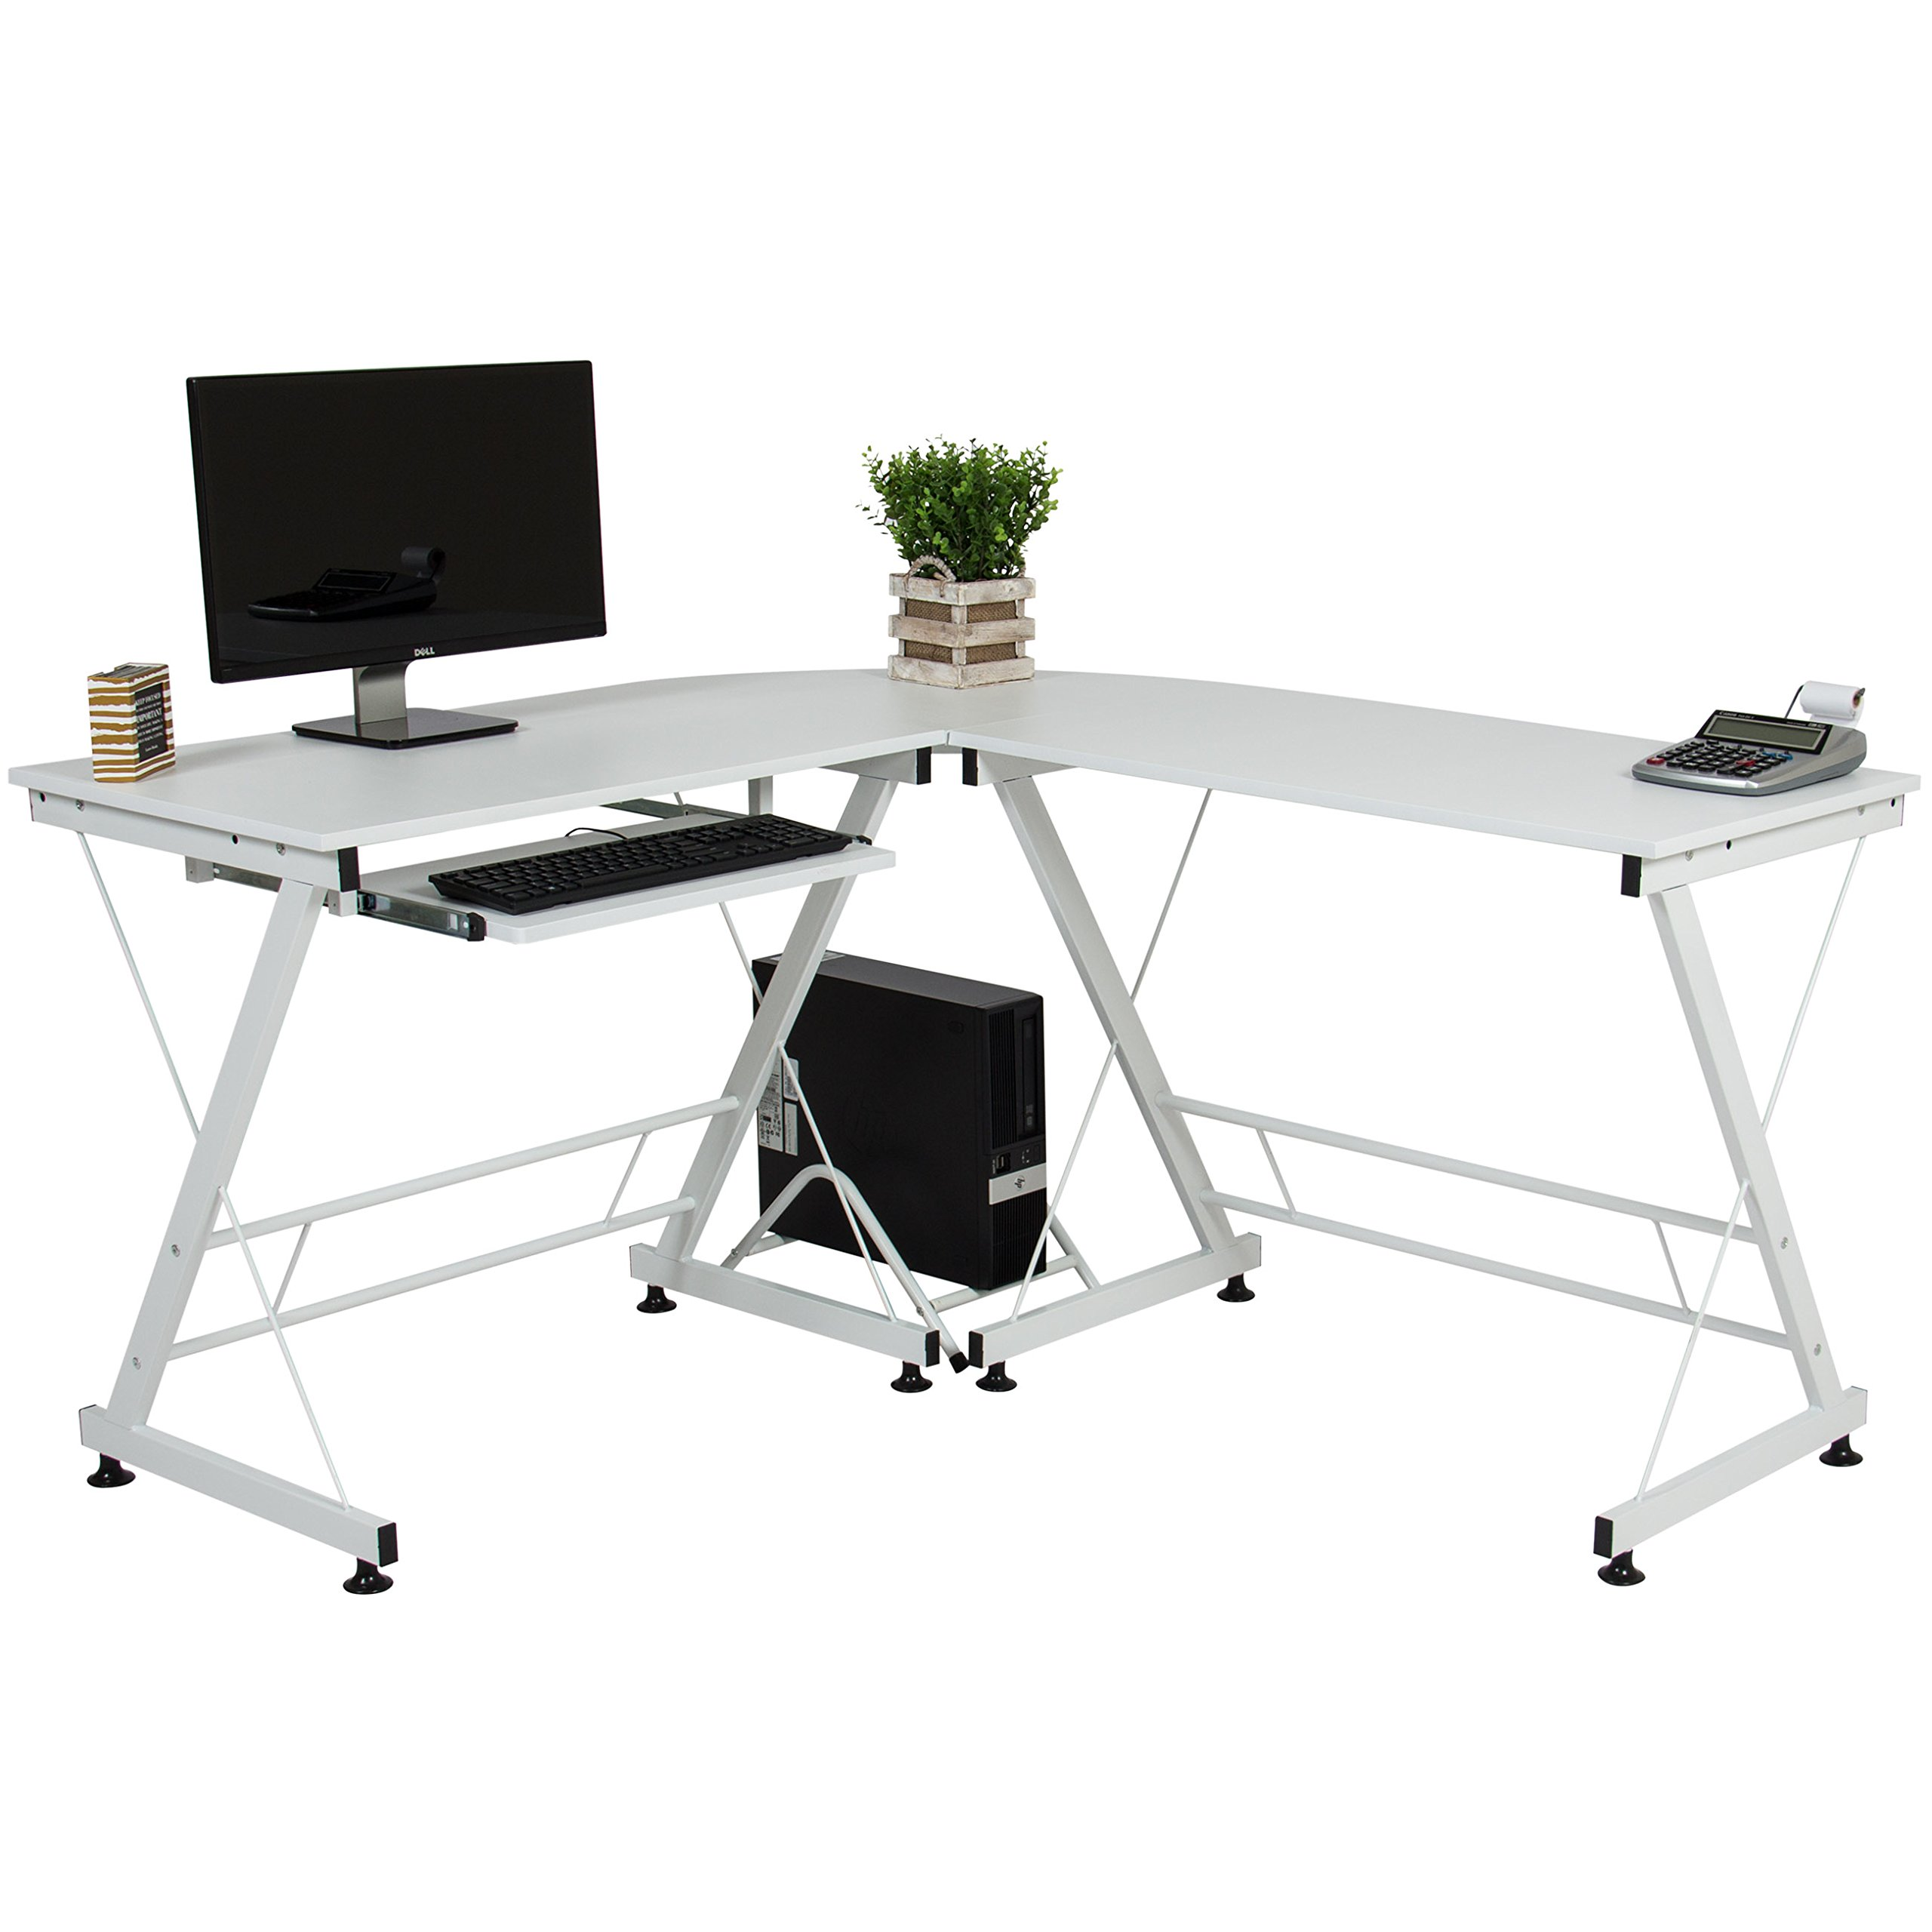 Best Choice Products Wood L-Shape Corner Computer Desk PC Laptop Table Workstation Home Office White by Best Choice Products